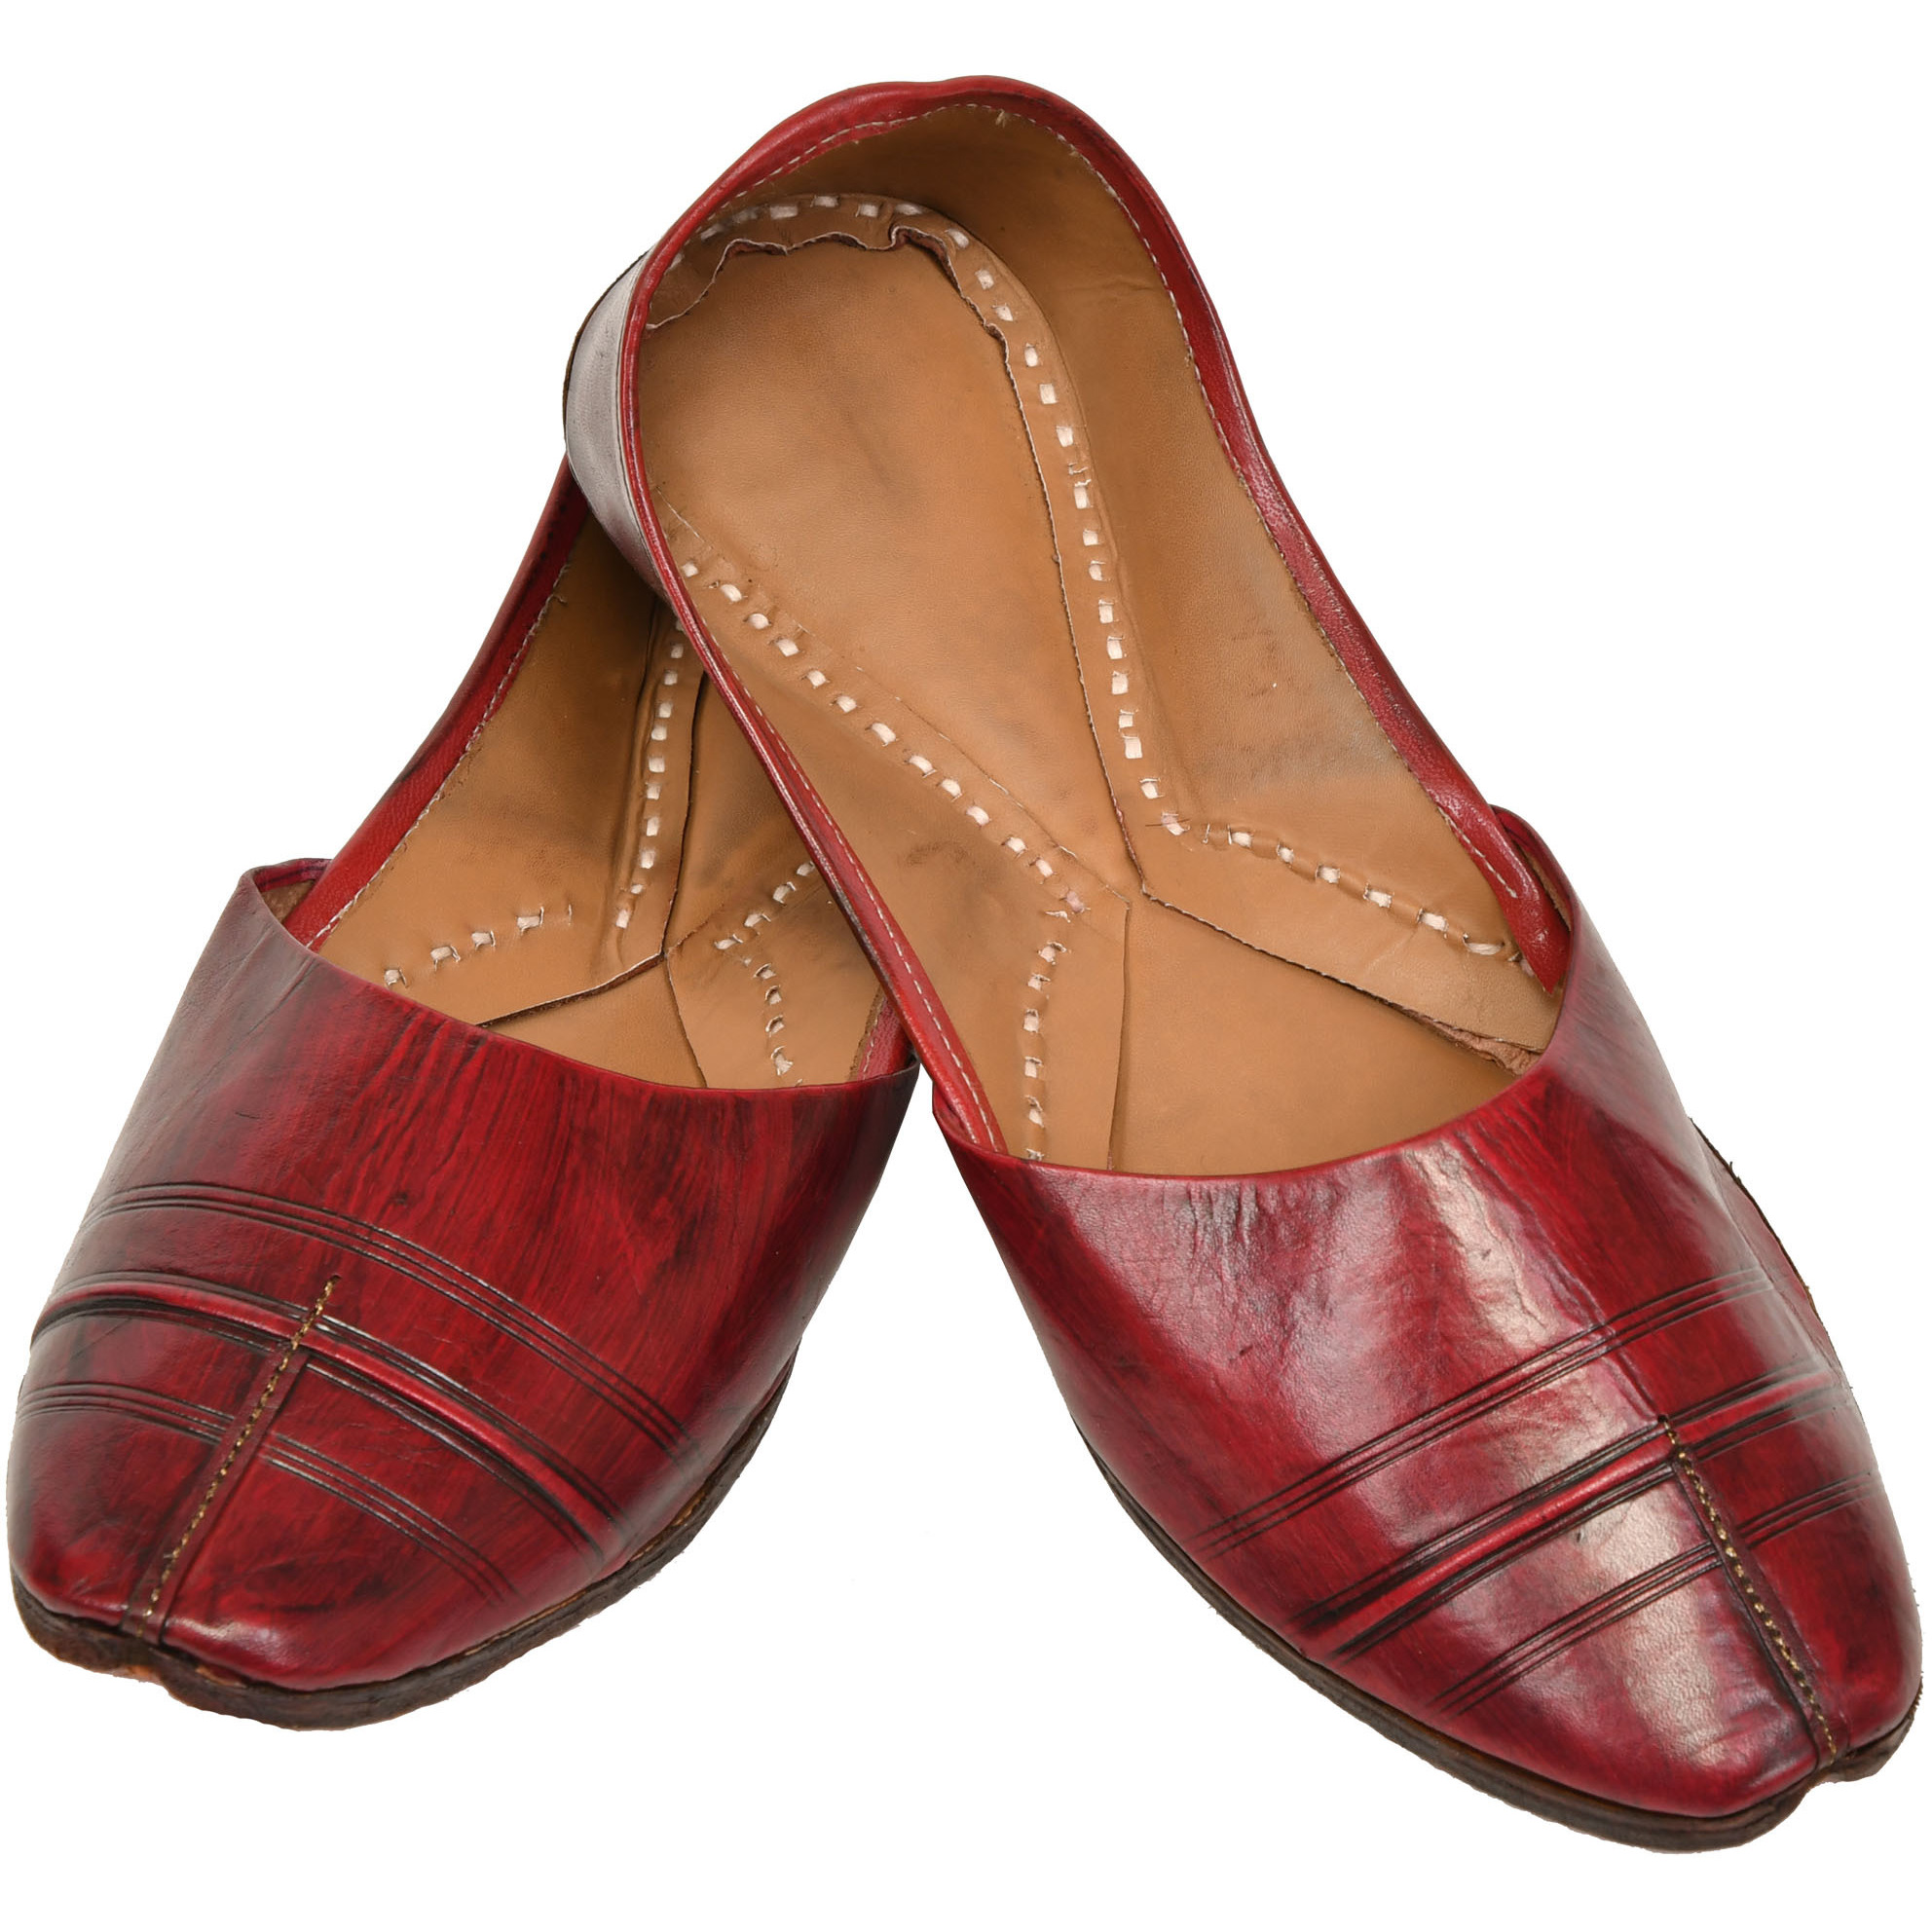 Tawny-Port Mojaris for Men with Stripes